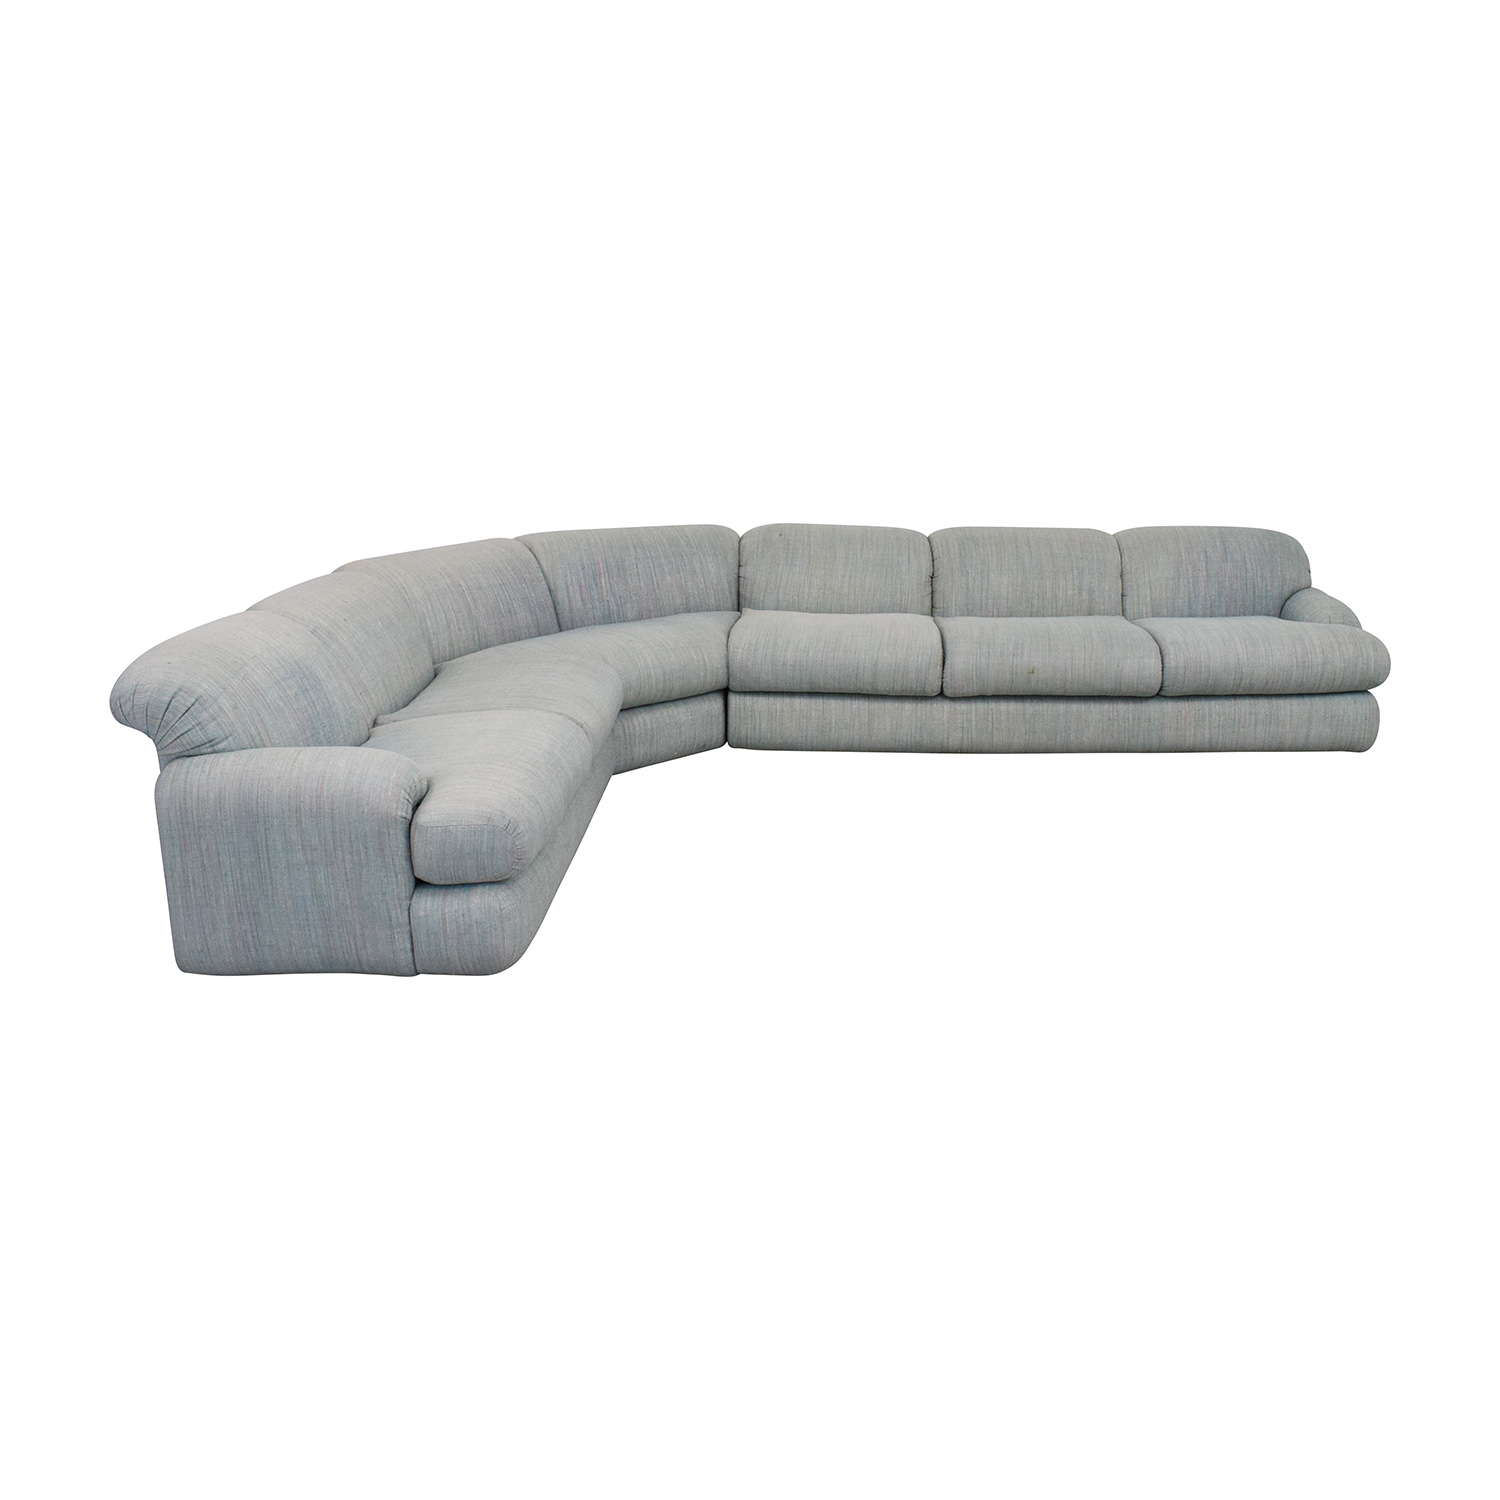 shop Preview Furniture Preview Furniture David L James Curved Corner Sectional Sofa online